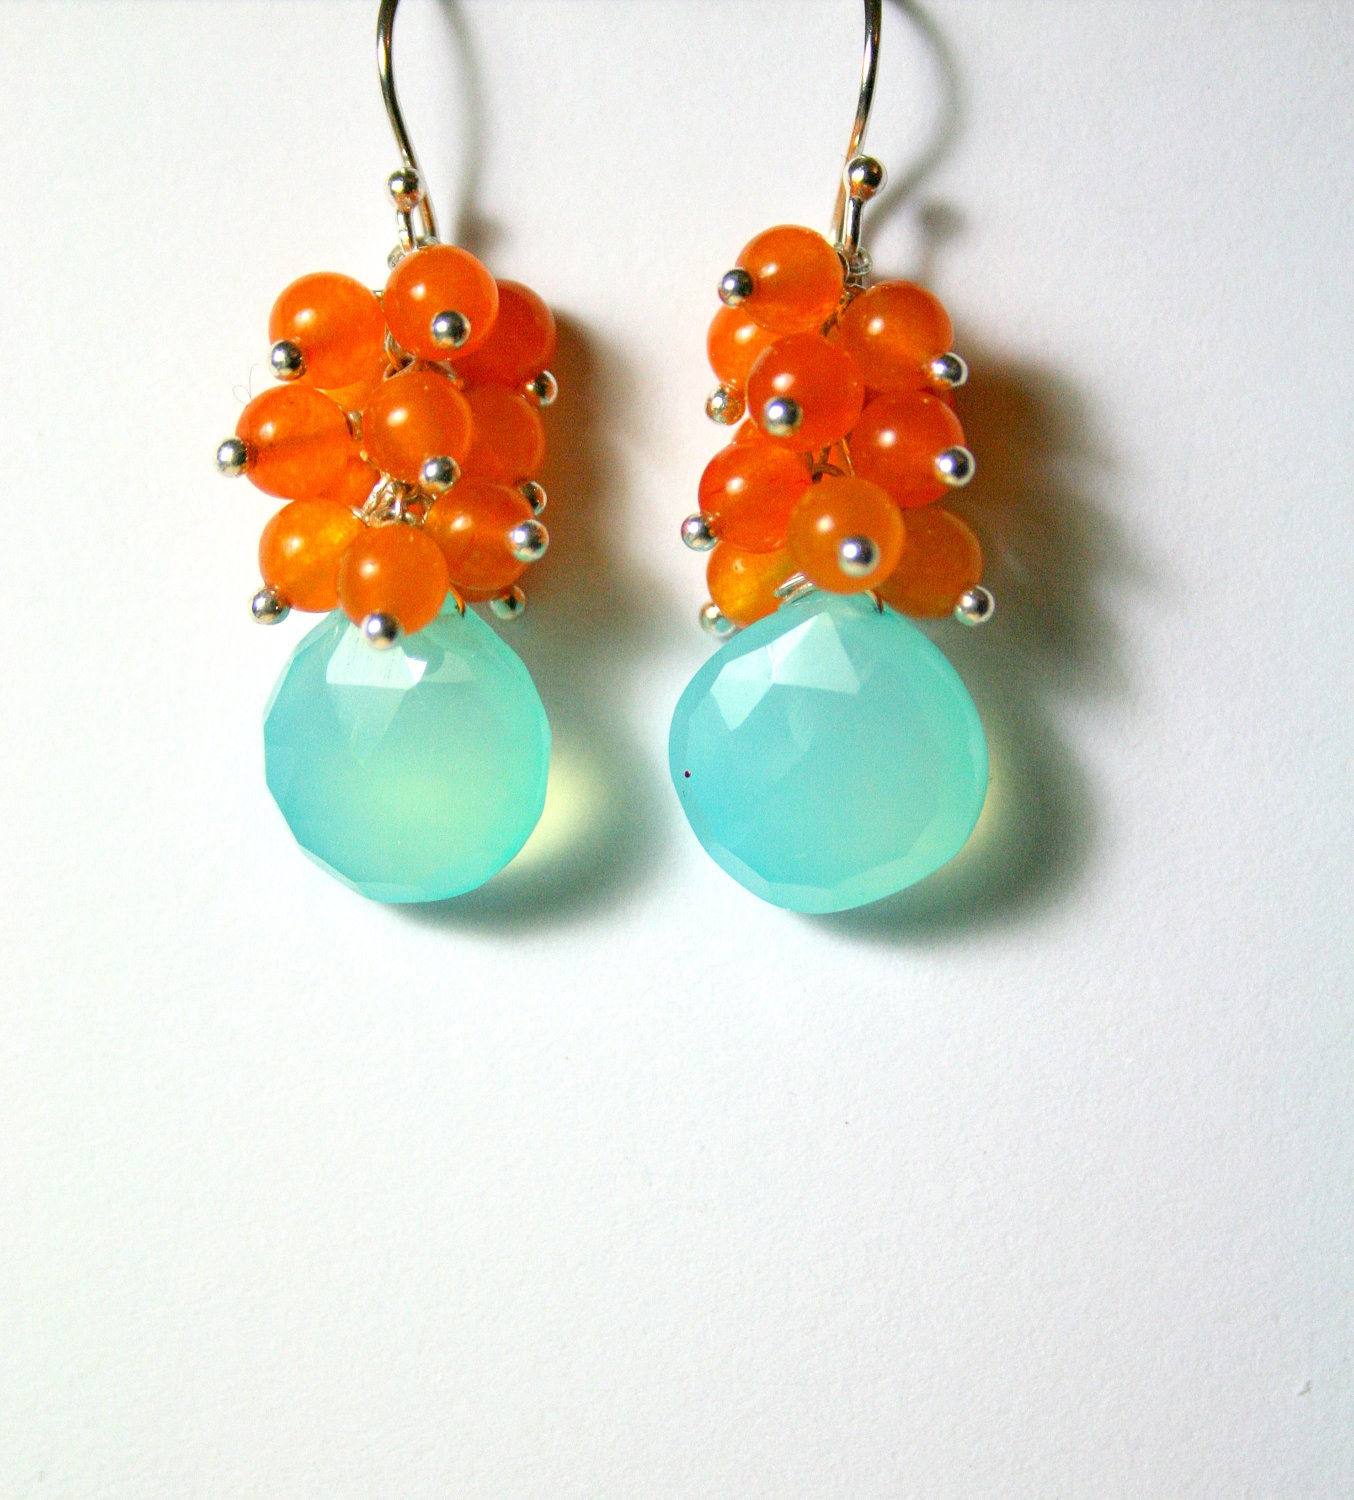 Aqua Gemstone Earrings, Orange Clusters, Sterling Silver